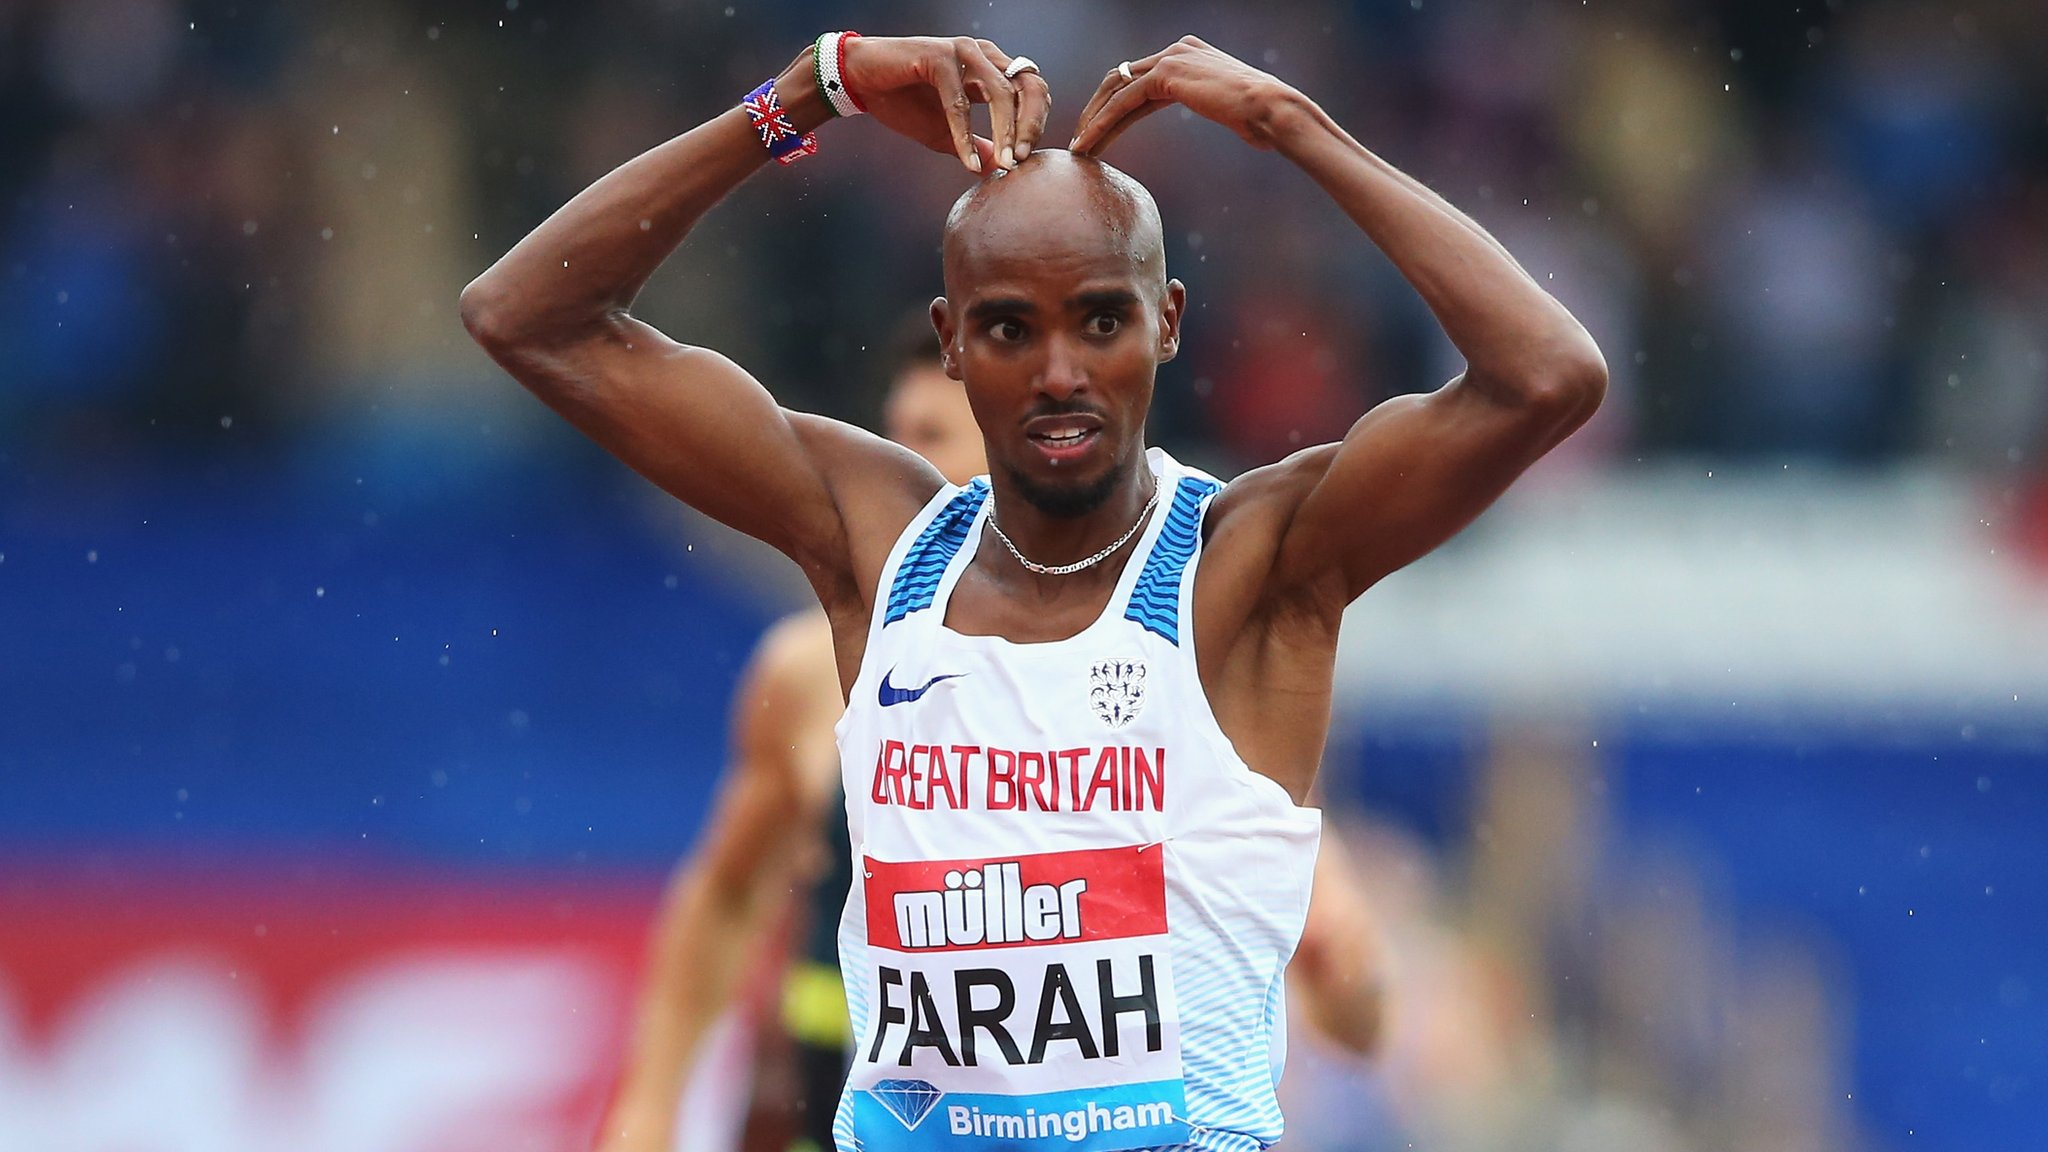 Farah wins final track race in Britain - report & highlights